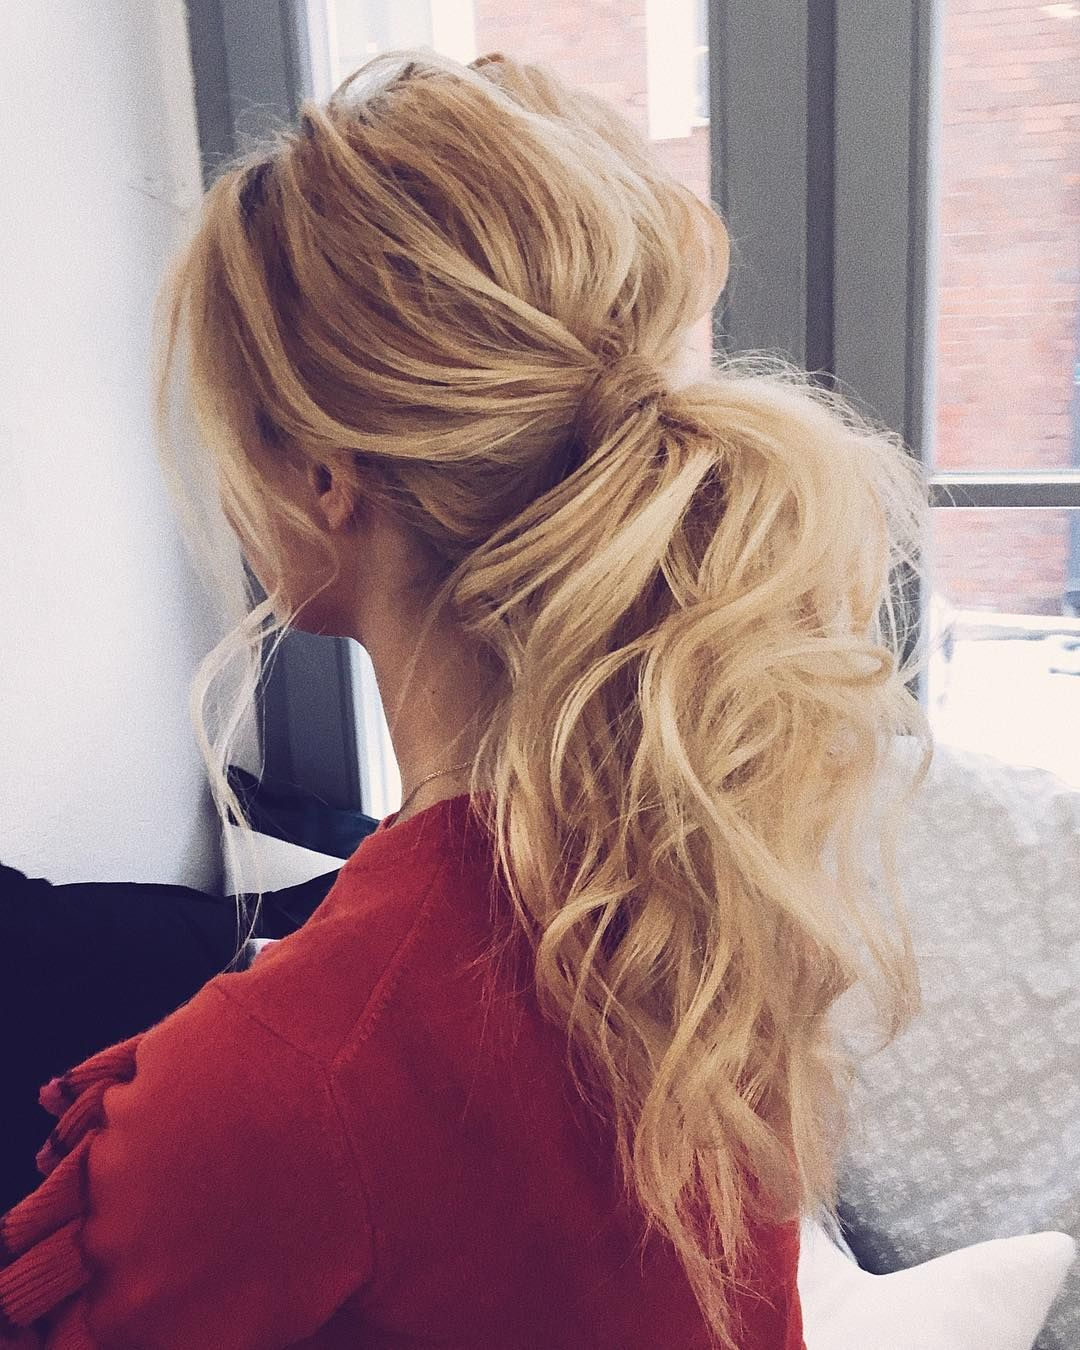 Pin by vanessa on hair in pinterest hair styles hair and